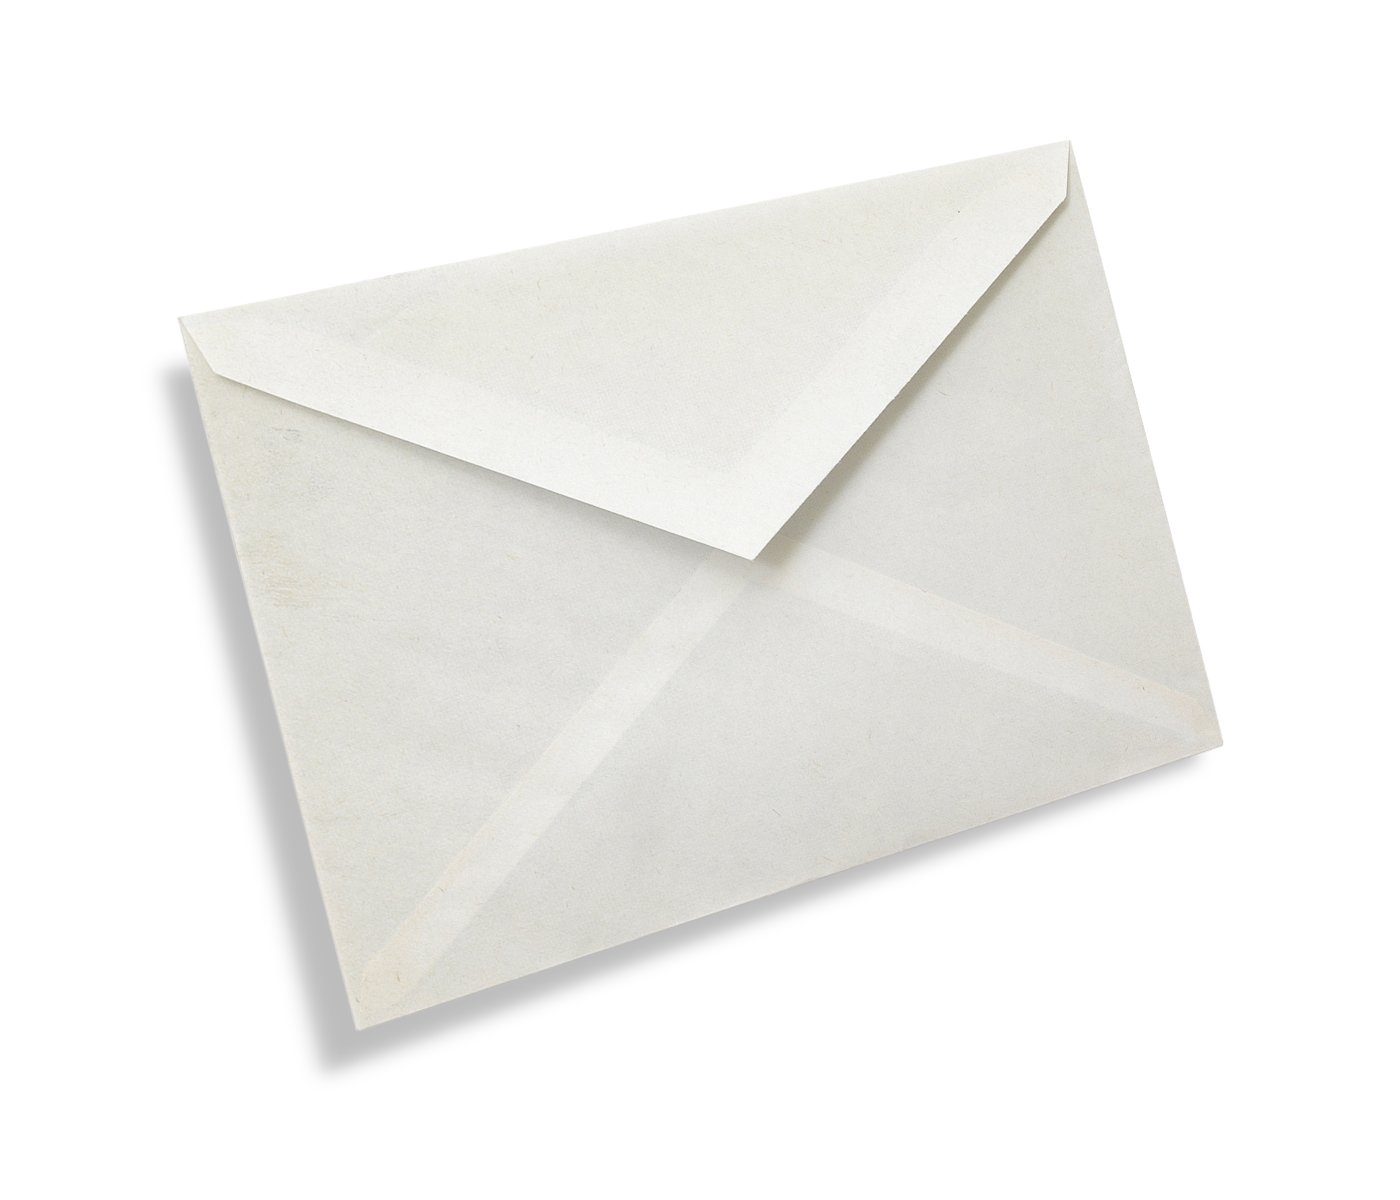 Letters Envelope Icon LG 12110